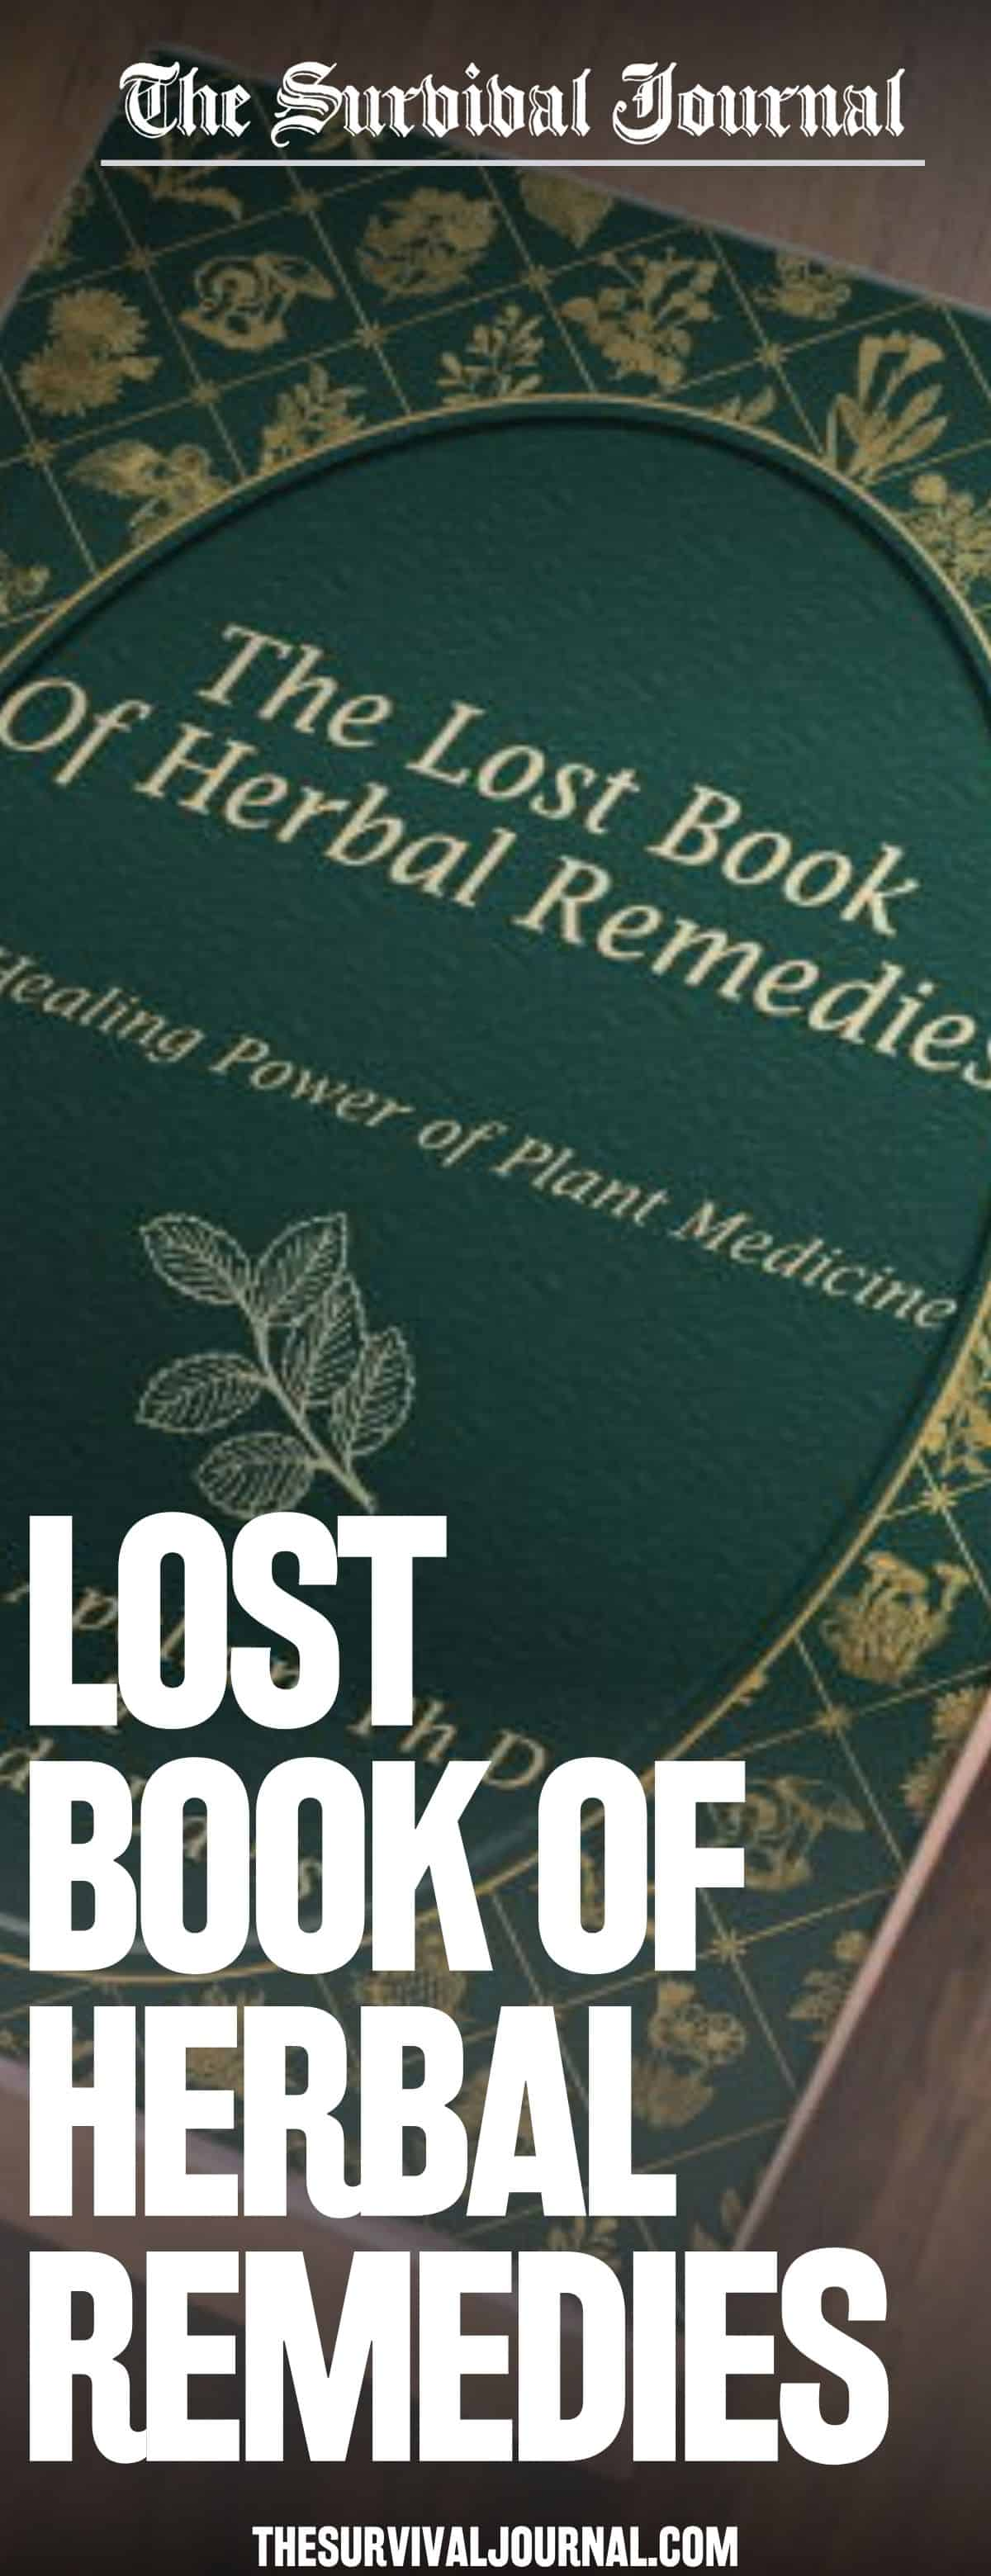 The Lost Book of Herbal Remedies Book Review